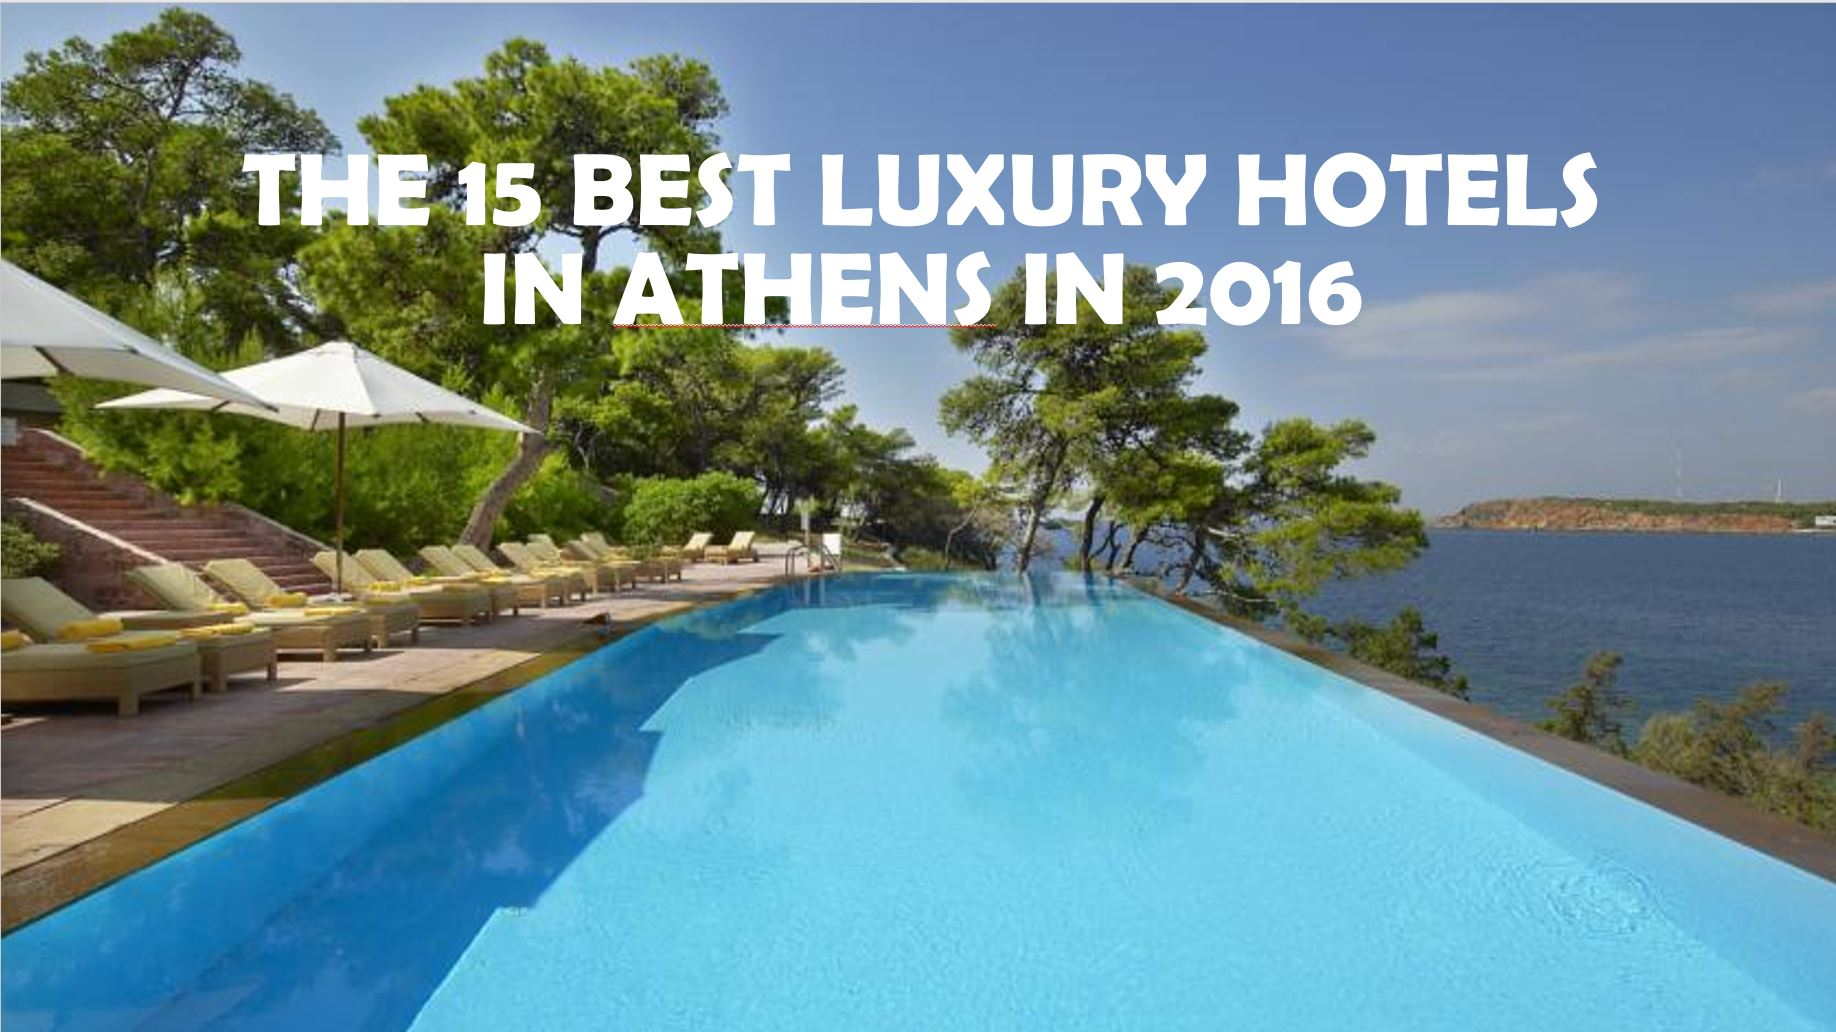 The 15 best luxury hotels in athens greece in 2016 guidora for Top luxury hotels